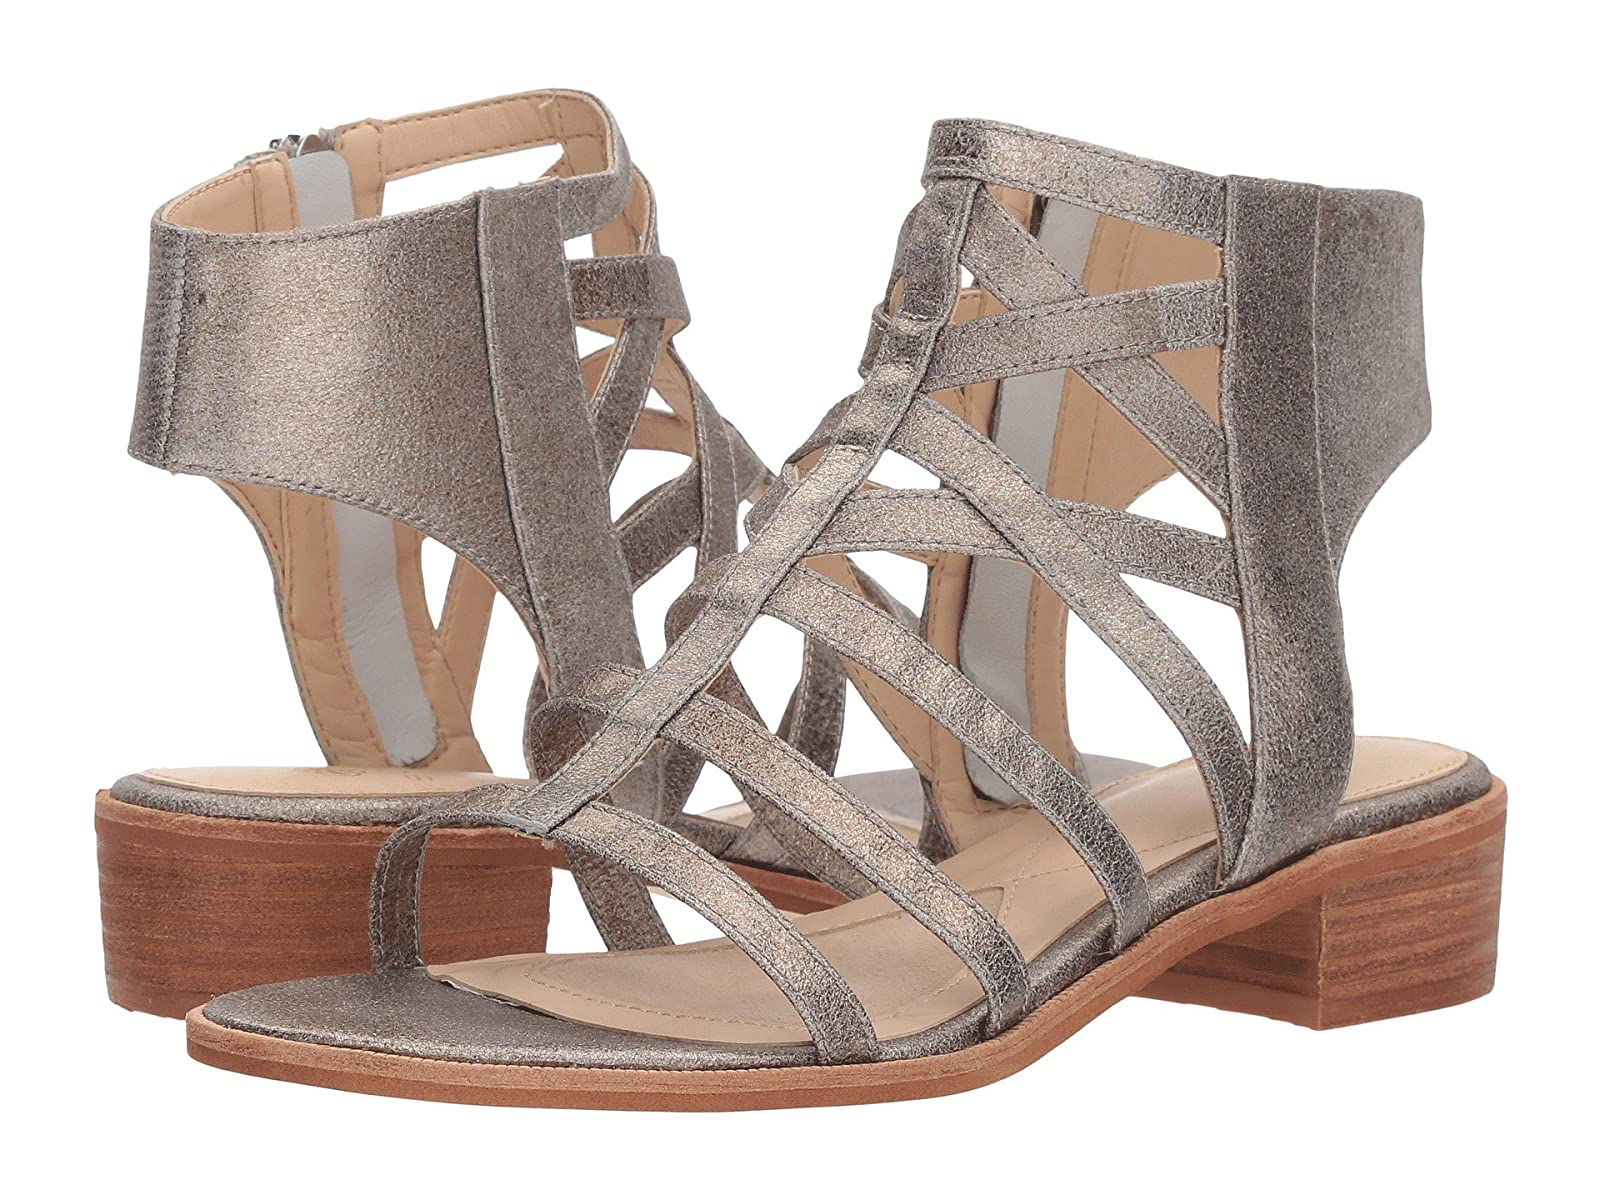 Isola GenesisCheap and distinctive eye-catching shoes